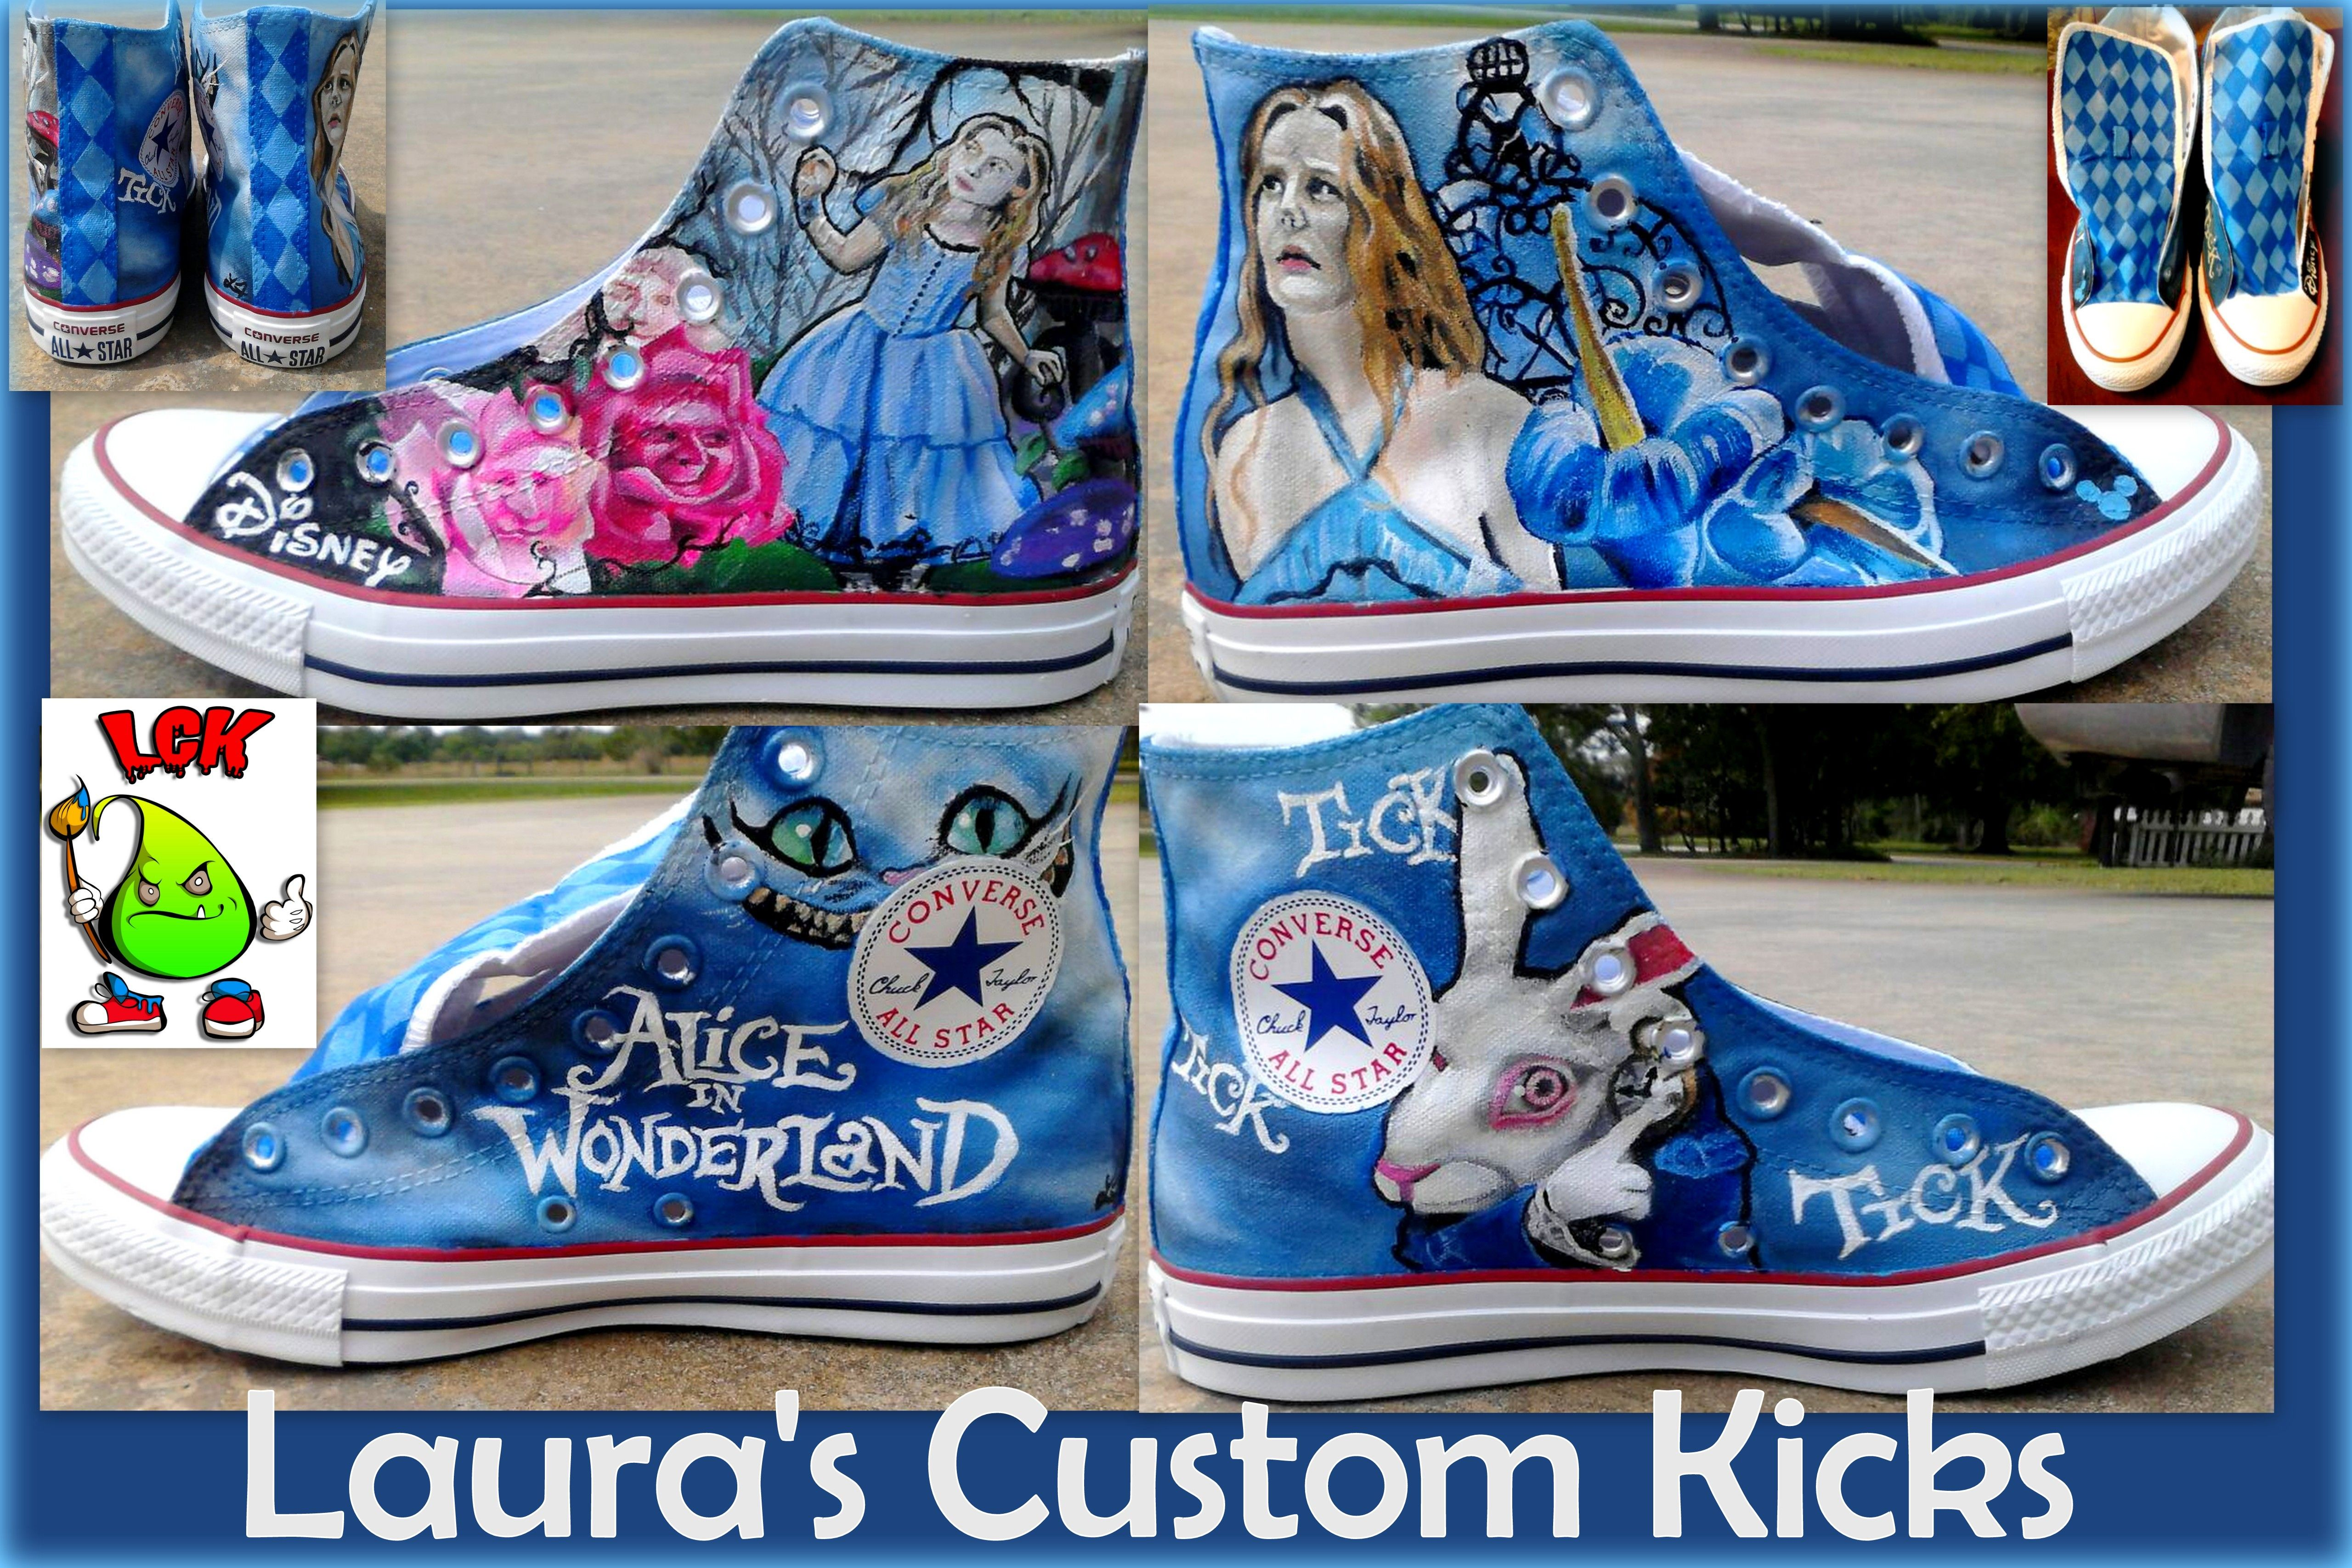 bac3c185a69d ... converse ltd 59e64 808bb norway custom disney alice in wonderland tim  burton shoes with alice cheshire cat rabbit and flowers ...